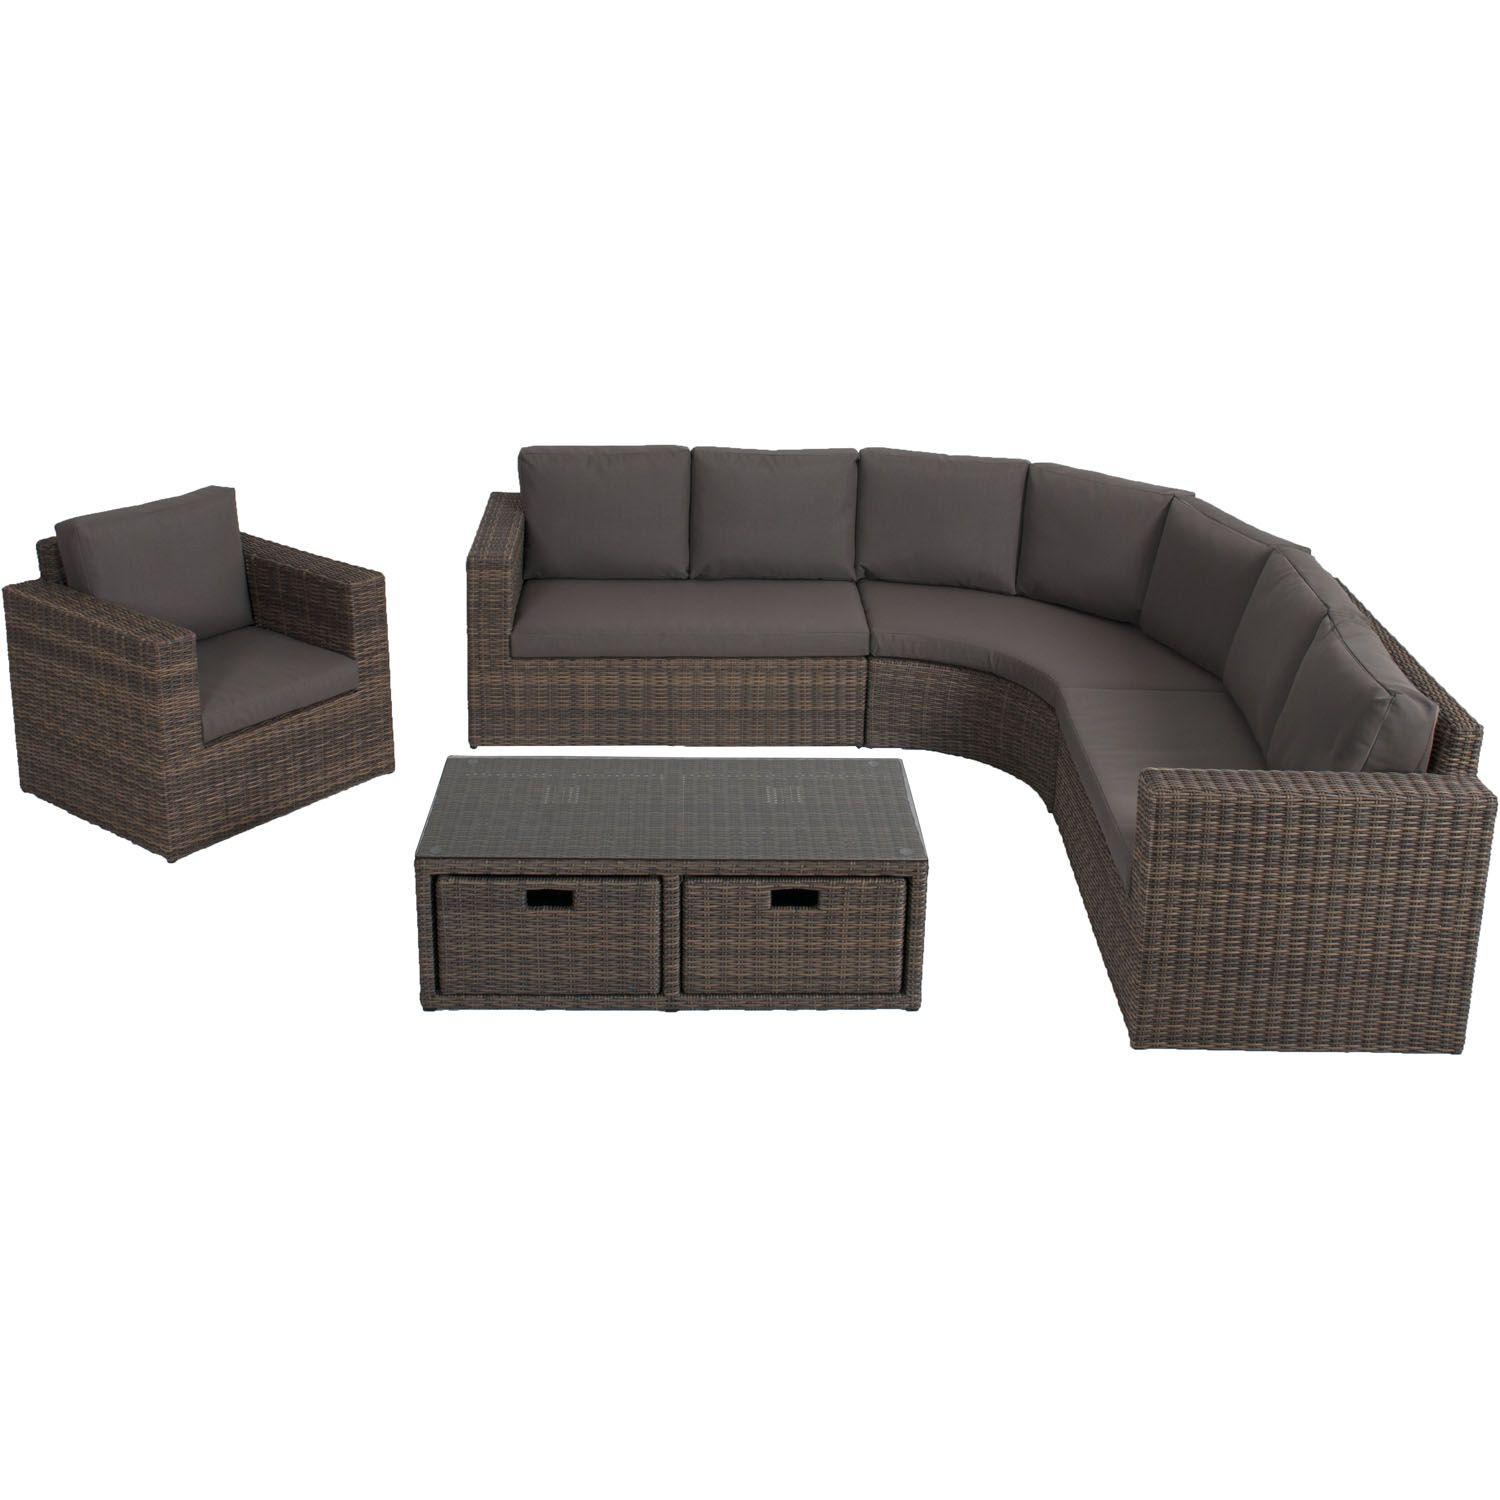 Curved Corner Couch Sectional On The Right Track But Wicker For The Outdoors Et